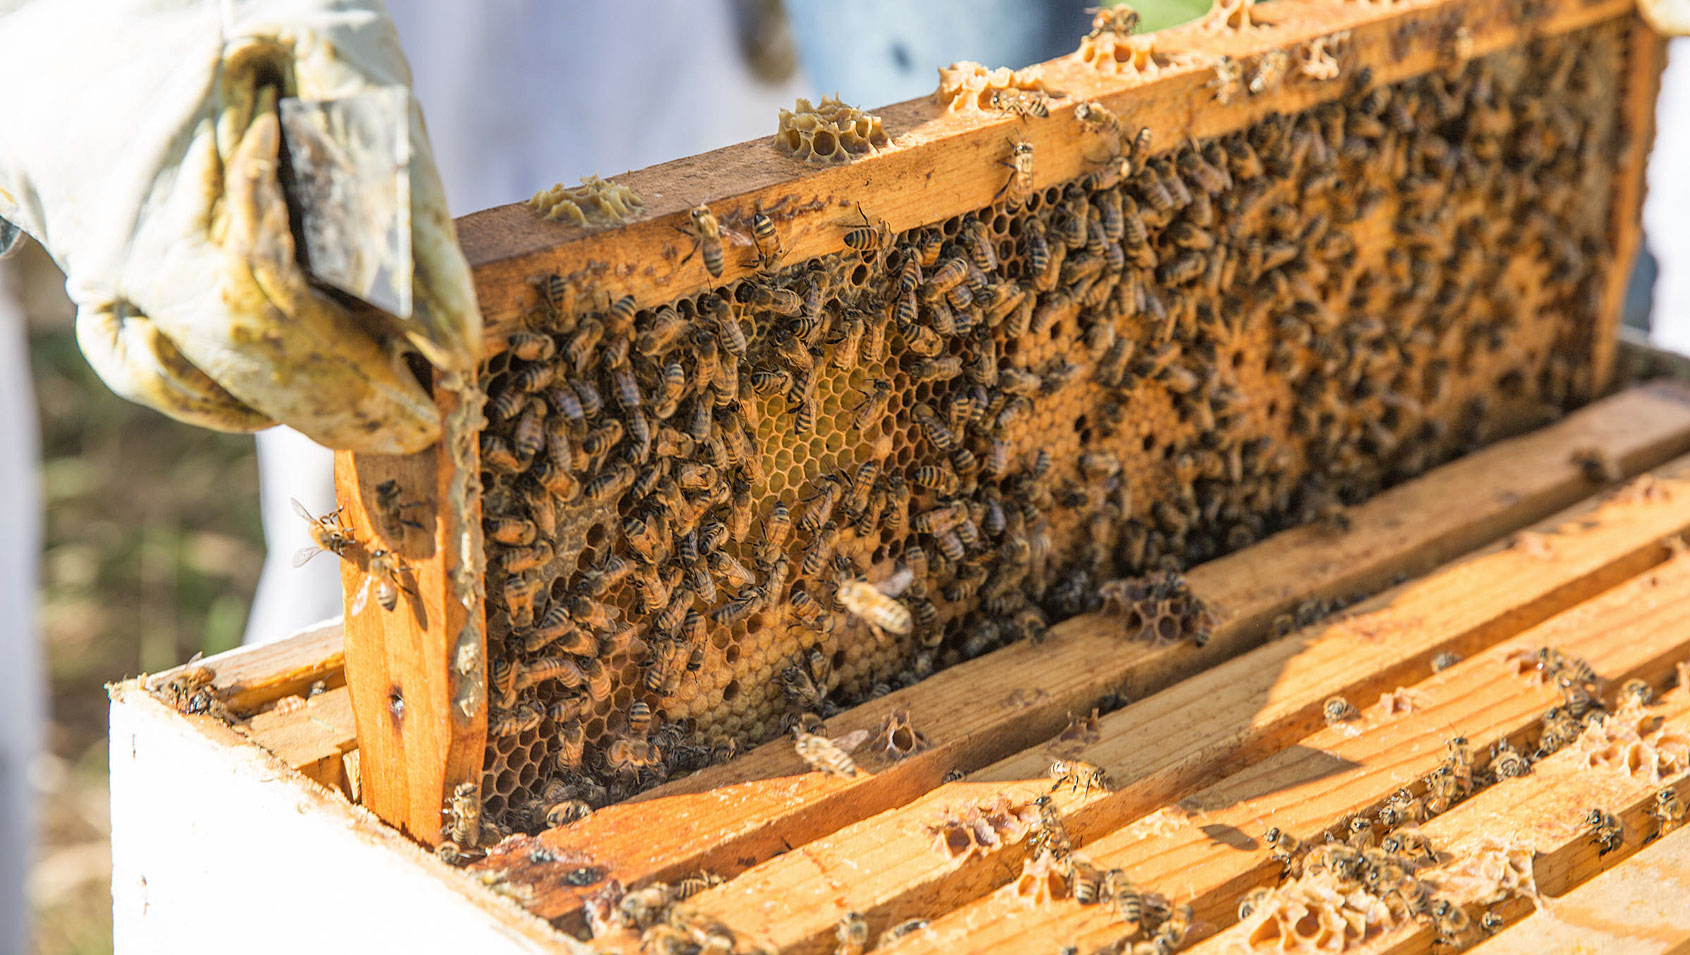 Southside Beekeeping Club